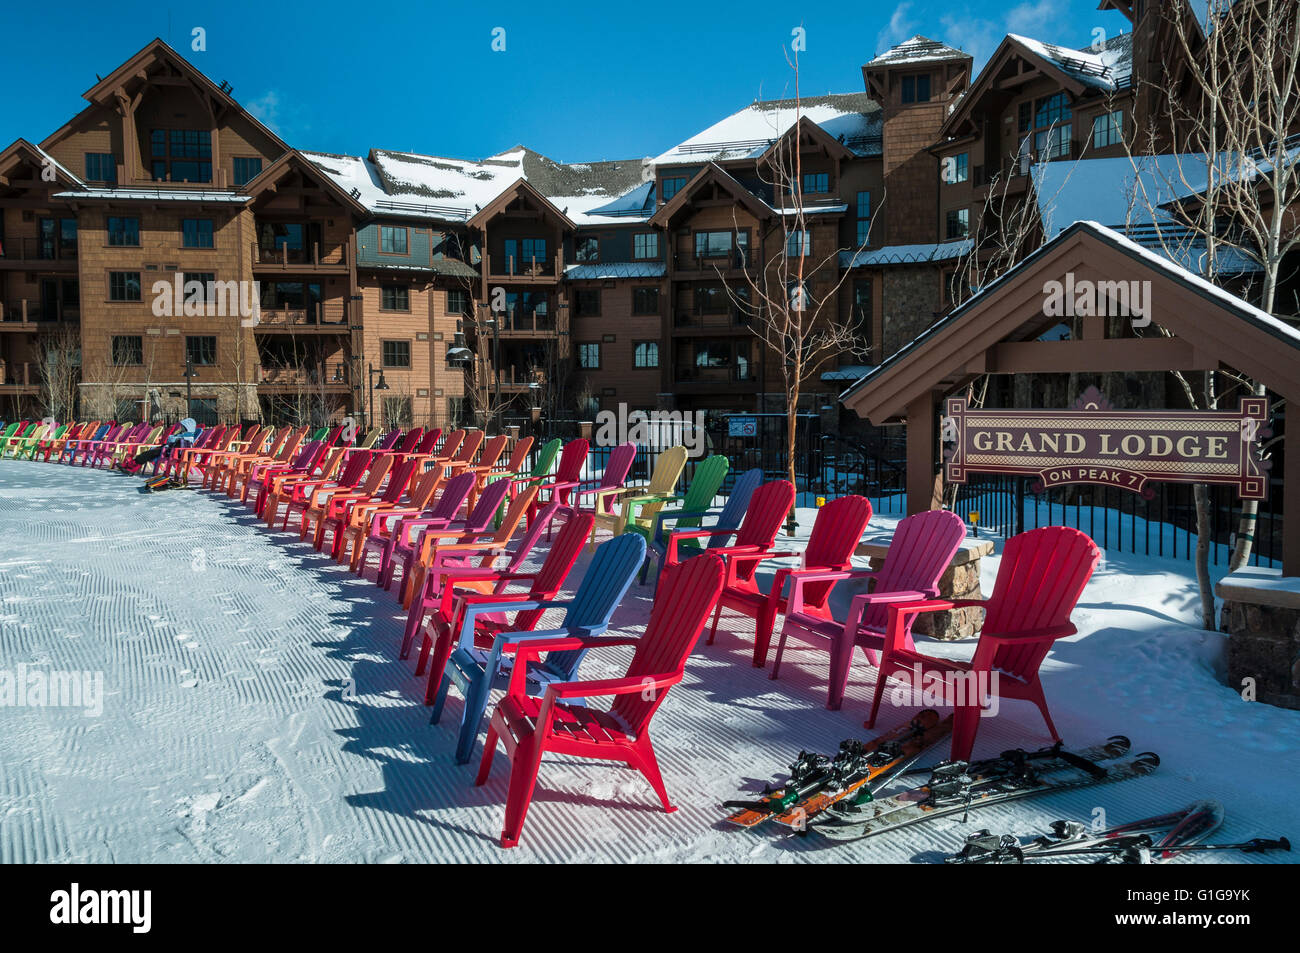 adirondack chairs in front of grand lodge on peak 7, breckenridge